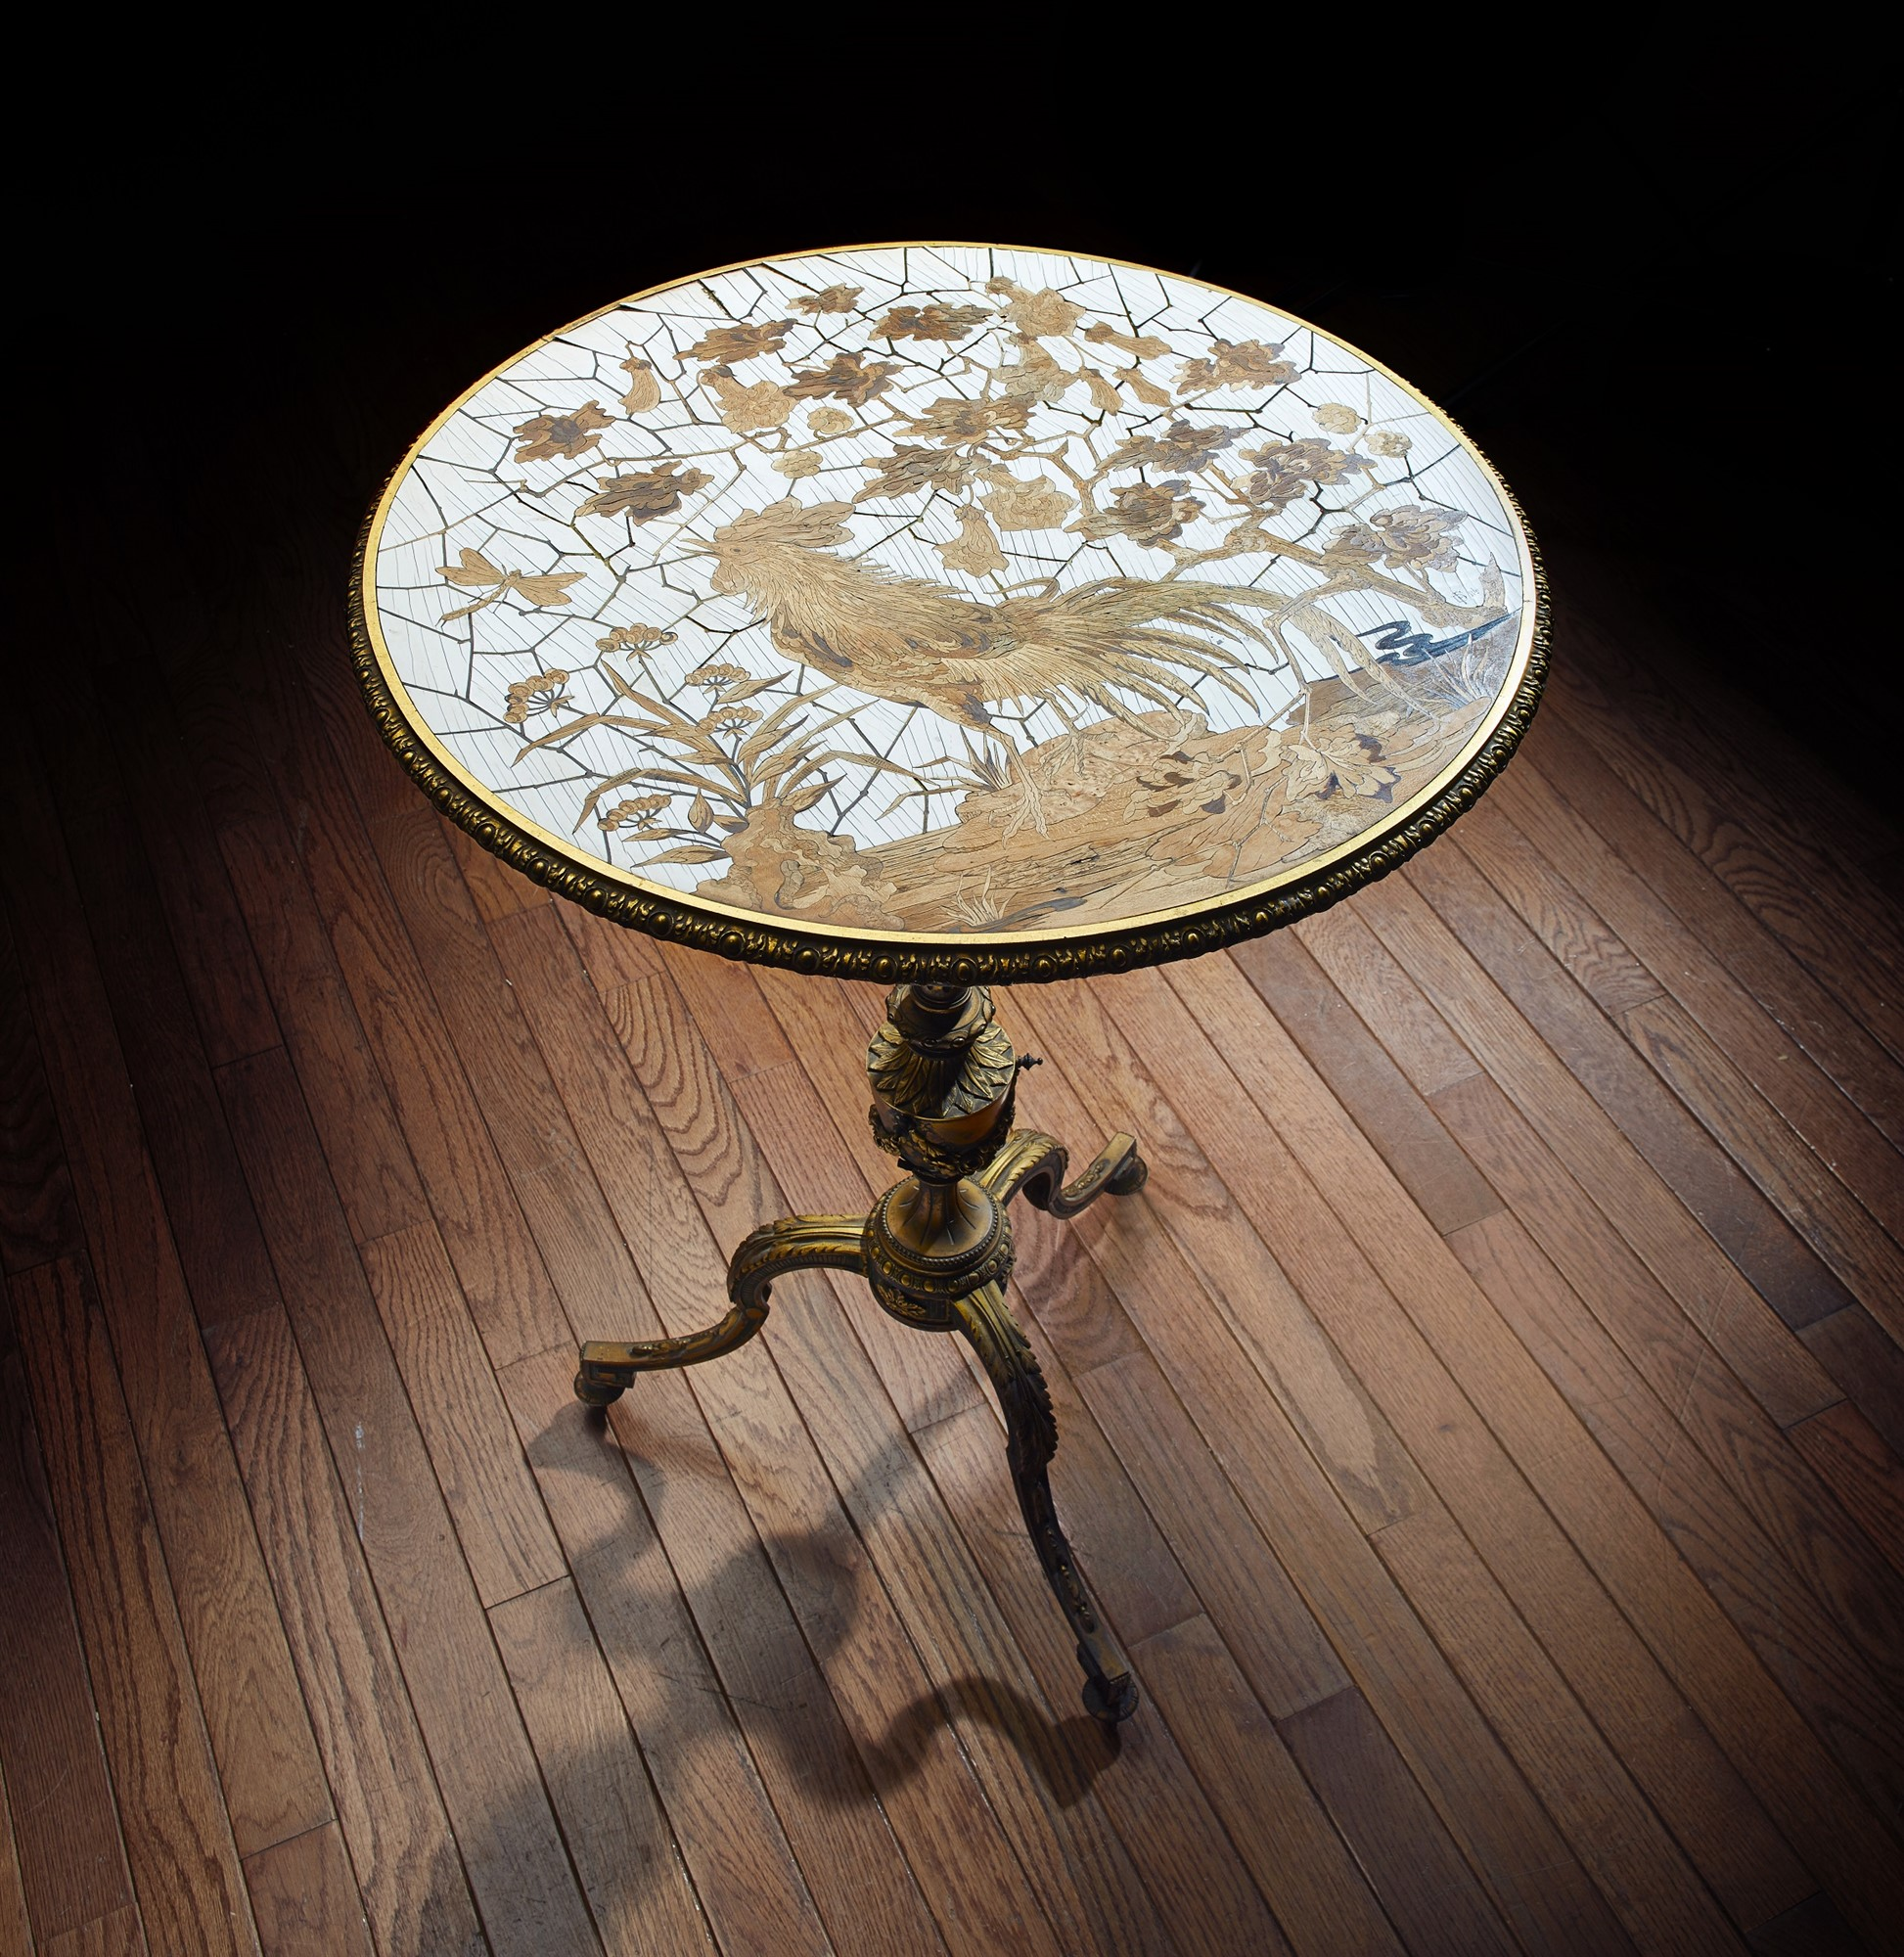 French Marquetry and Giltmetal Table by Maison Giroux